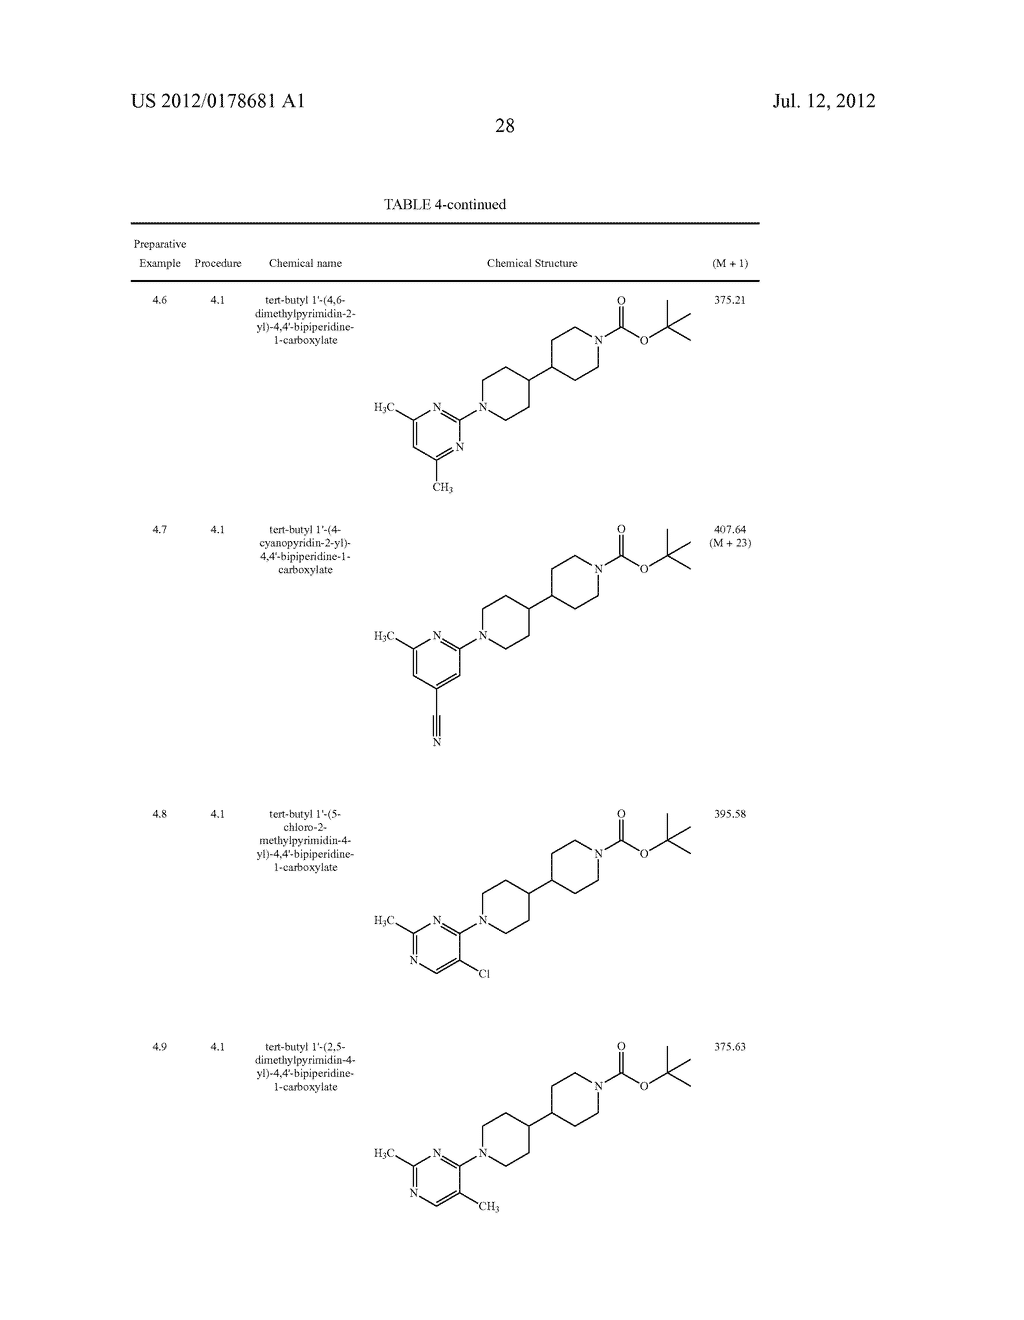 BIPIPERIDINYL COMPOUNDS, COMPOSITIONS, CONTAINING SUCH COMPOUNDS AND     METHODS OF TREATMENT - diagram, schematic, and image 29